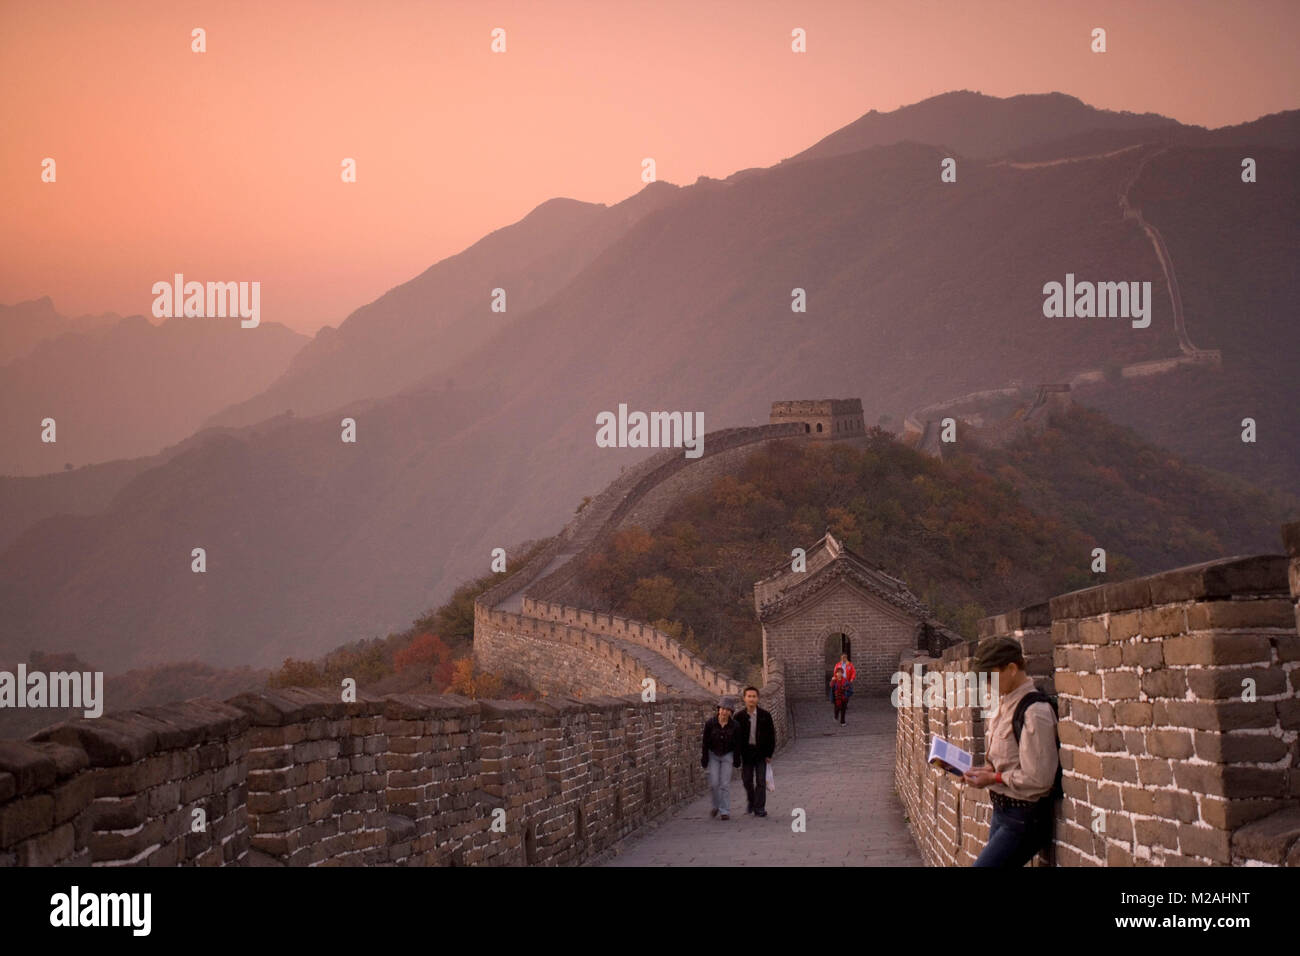 China. Mutianyu, near Beijing. The Great Wall. UNESCO World Heritage site. Tourists. - Stock Image